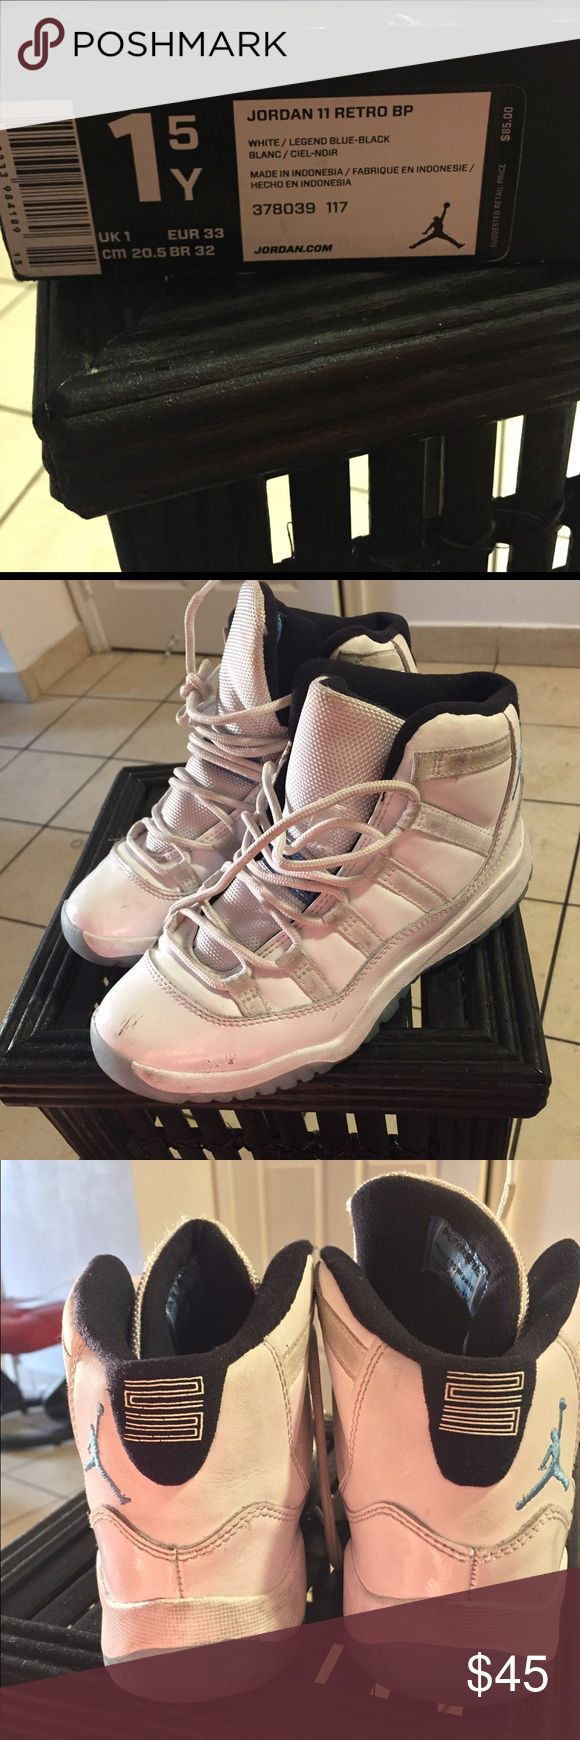 Legendary original authentic Jordan 11 retro Regular wear and tear,but these Jordan's were hard to get because they were the original color. Jordan Shoes Sneakers